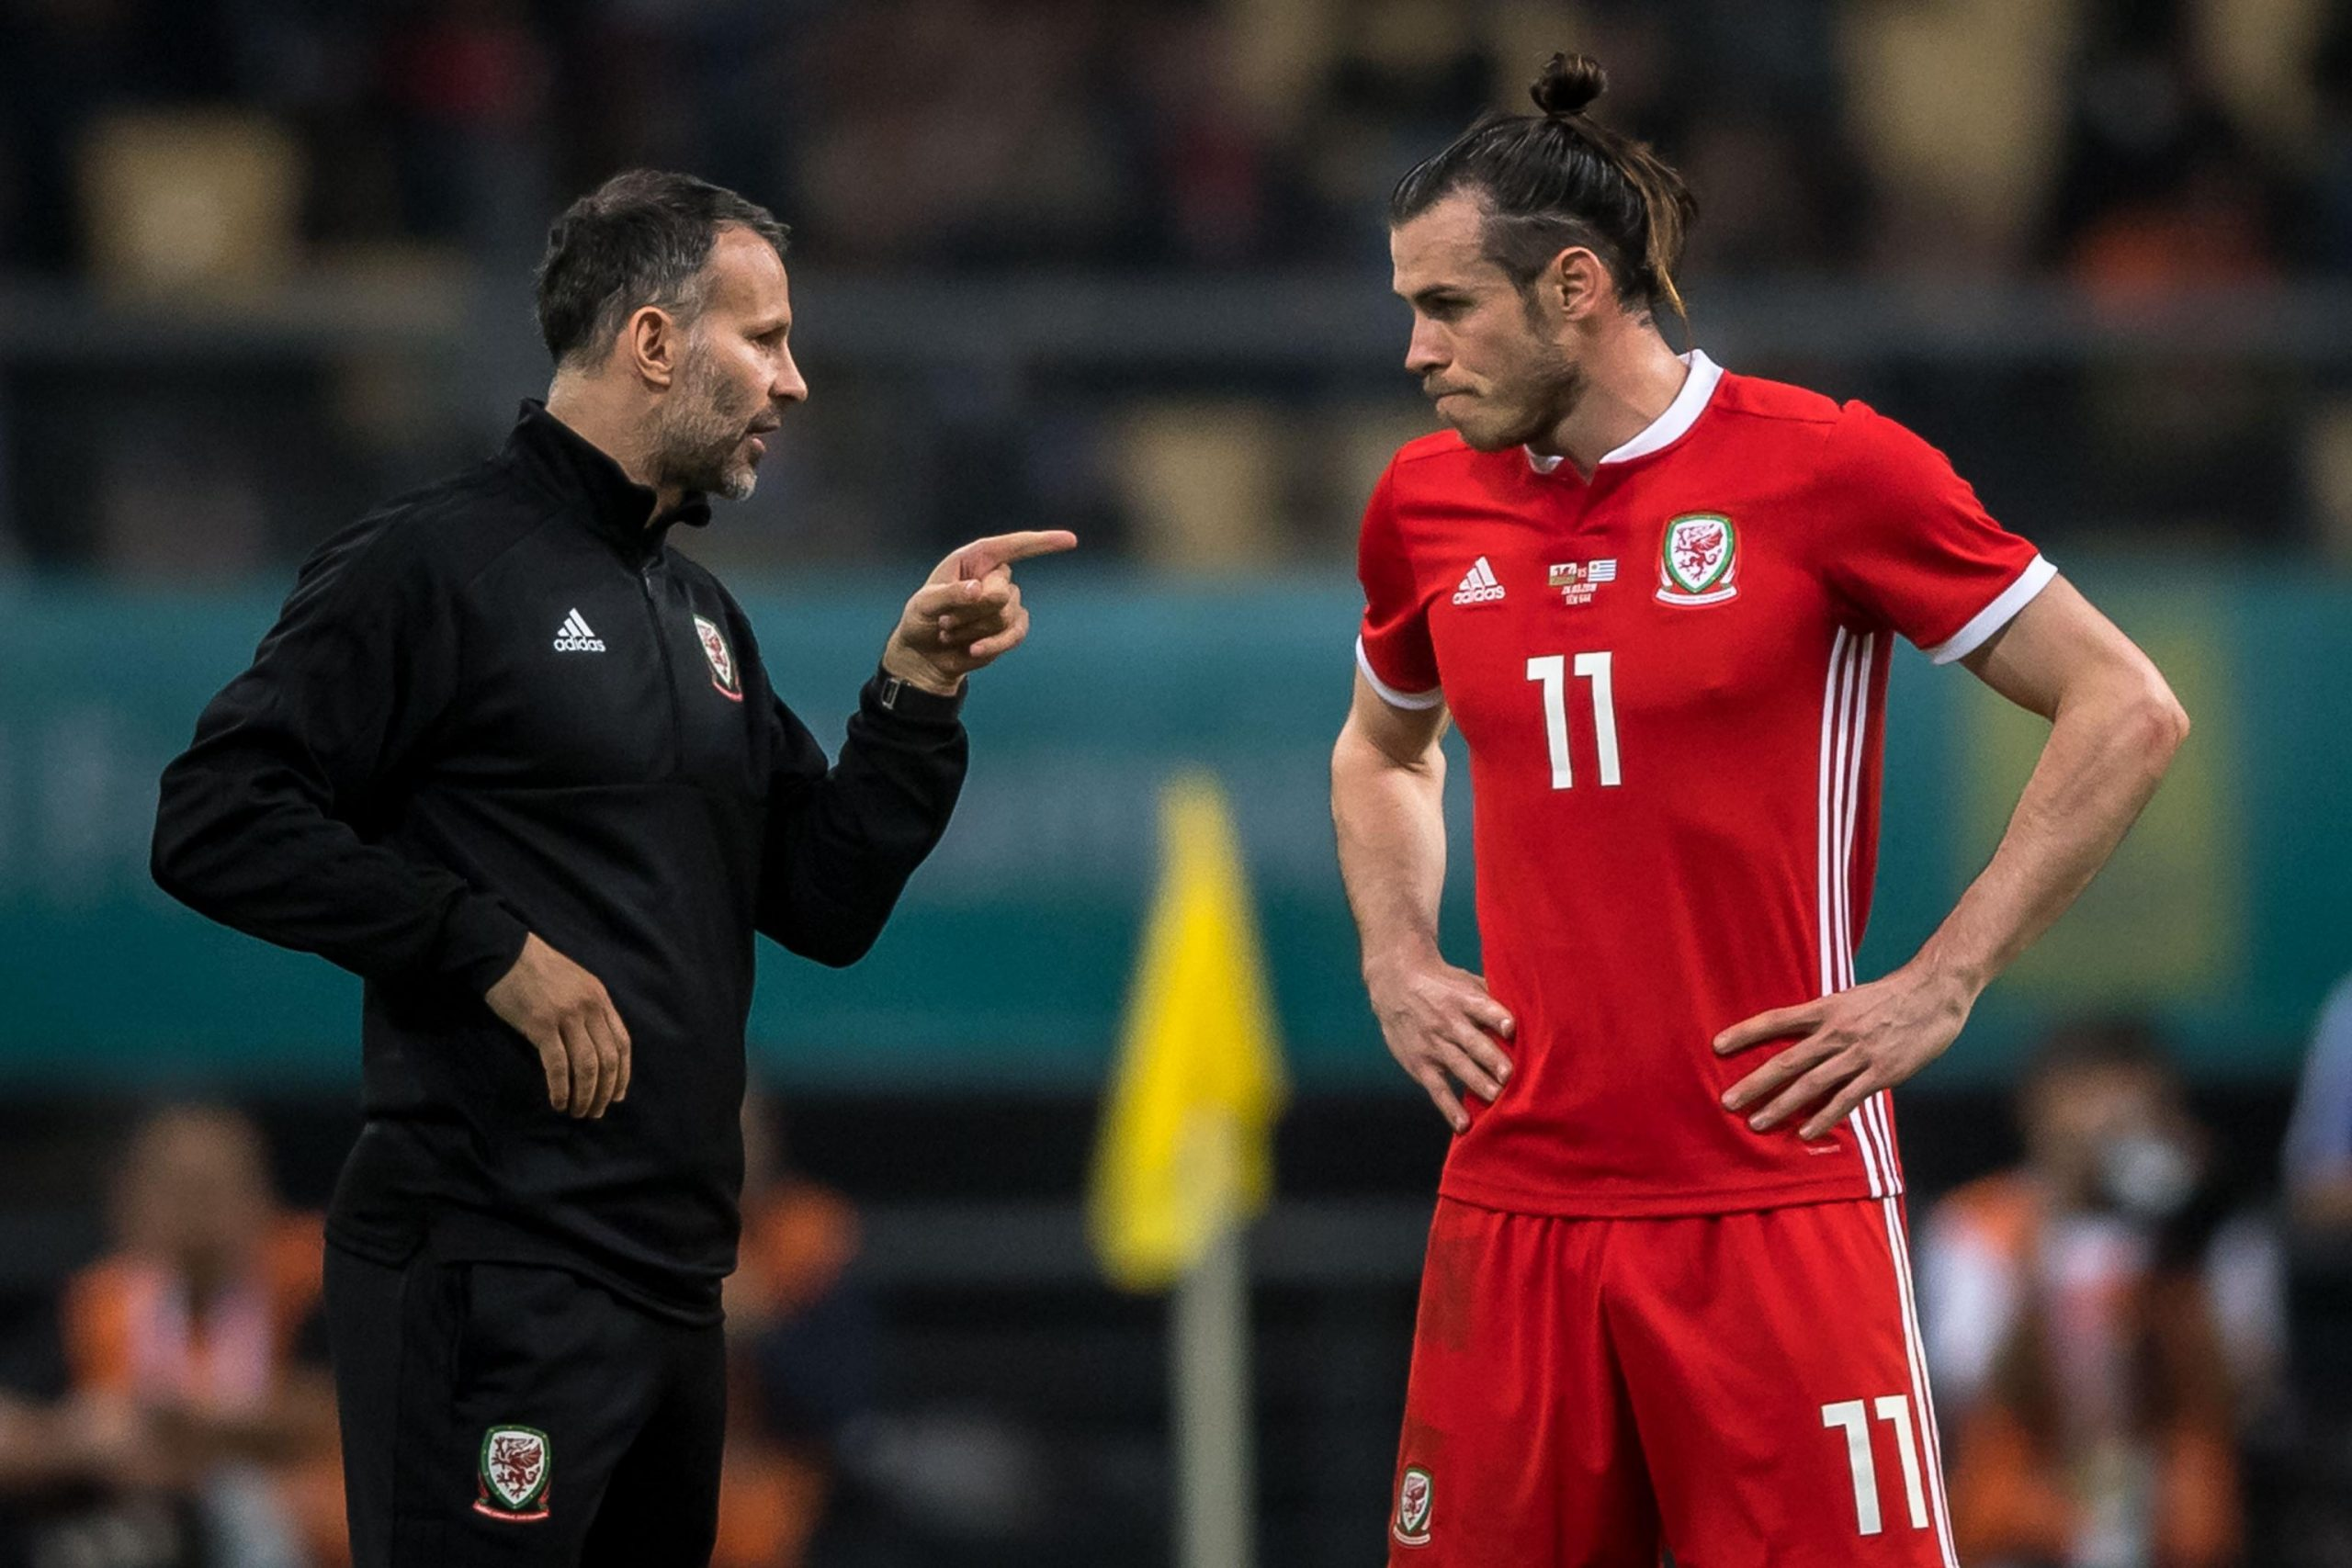 Joe Rodon is keen to play with Gareth Bale and Ben Davies at Tottenham Hotspur